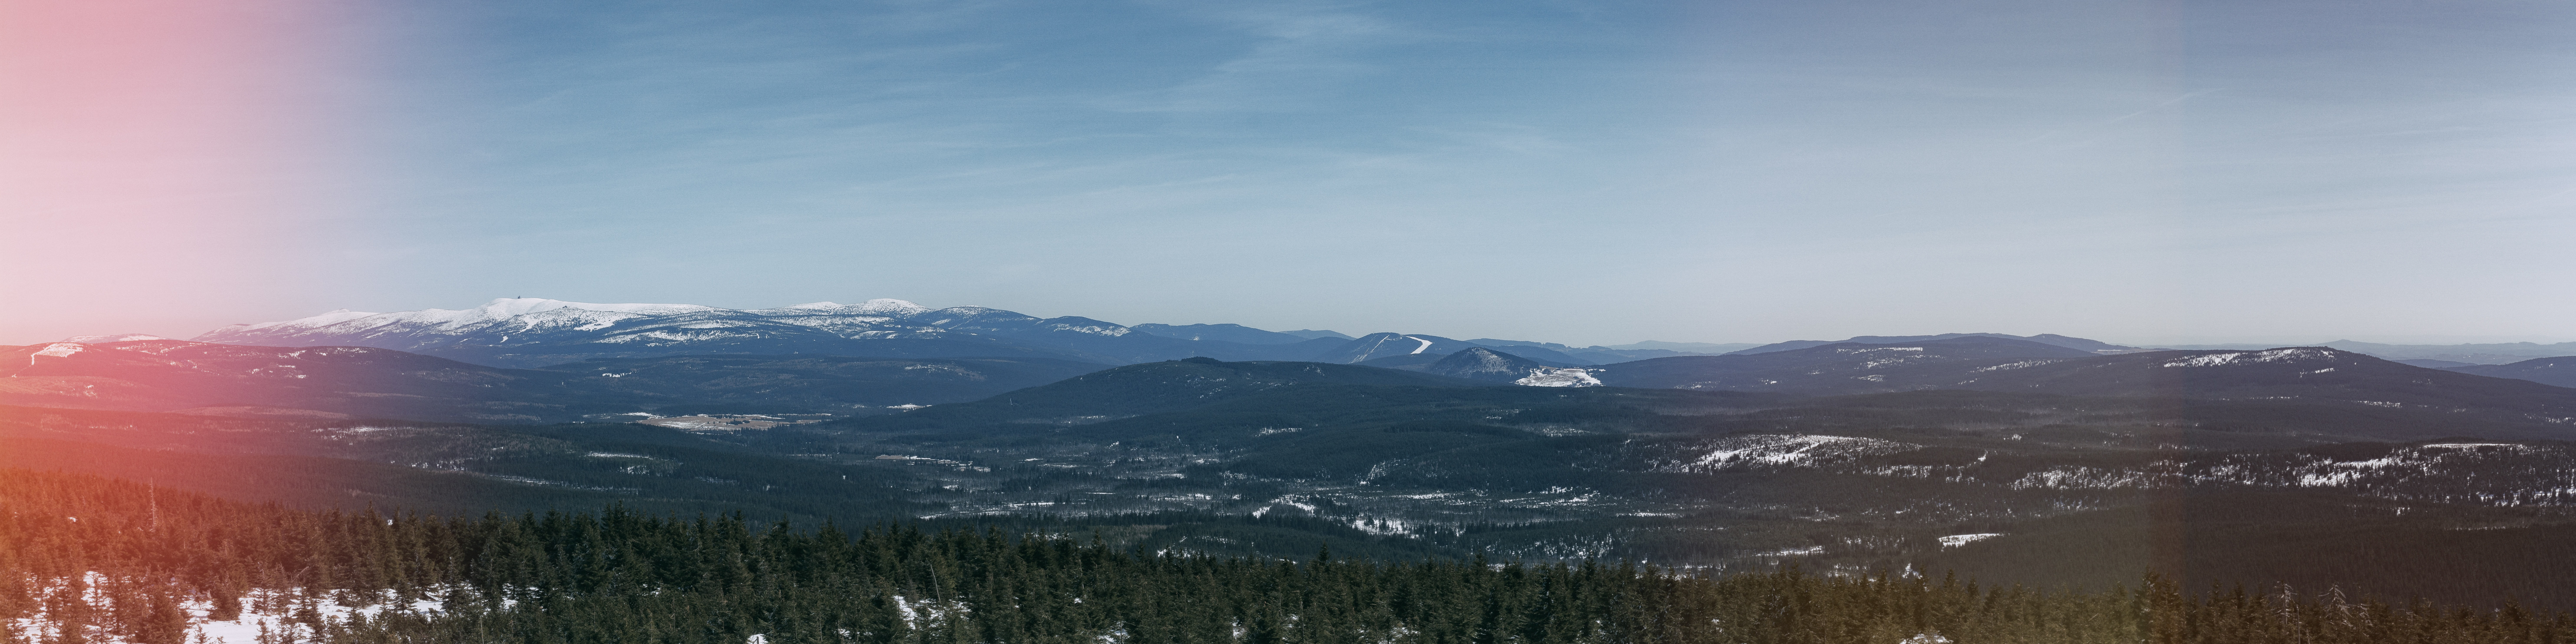 panoramic photo of trees and mountains